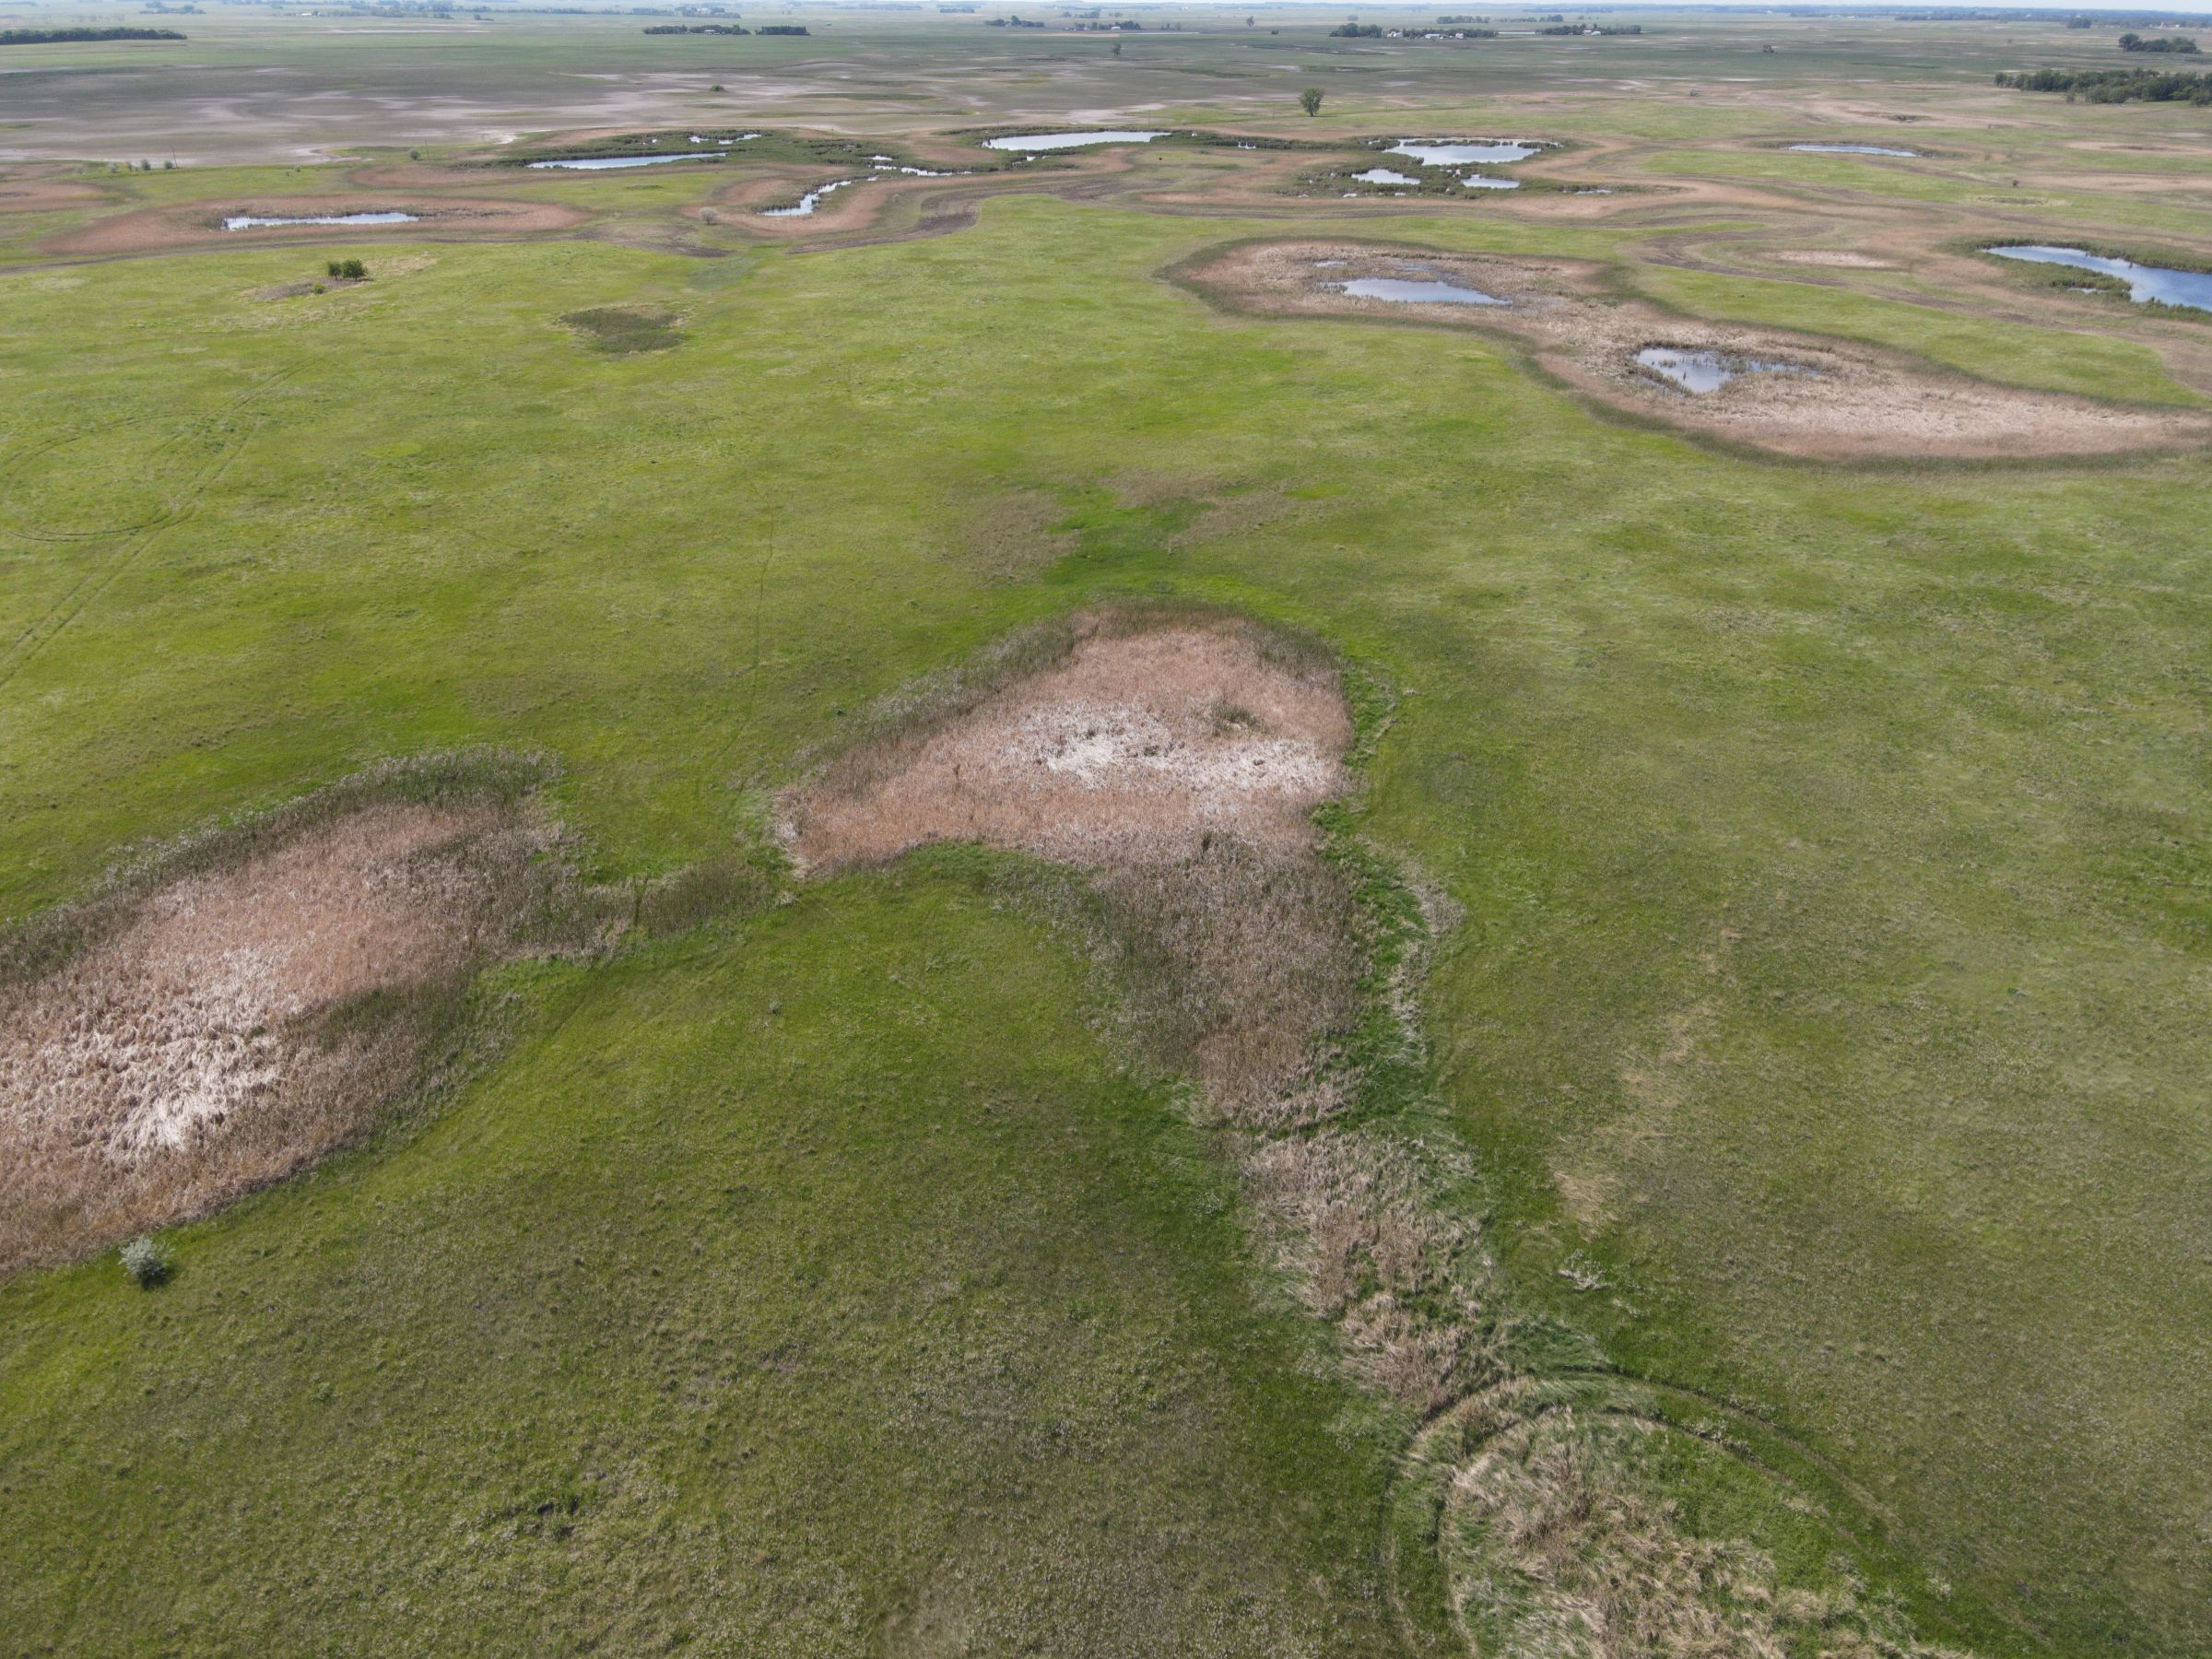 auctions-cass-county-north-dakota-320-acres-listing-number-15590-3-2021-06-22-191236.JPG